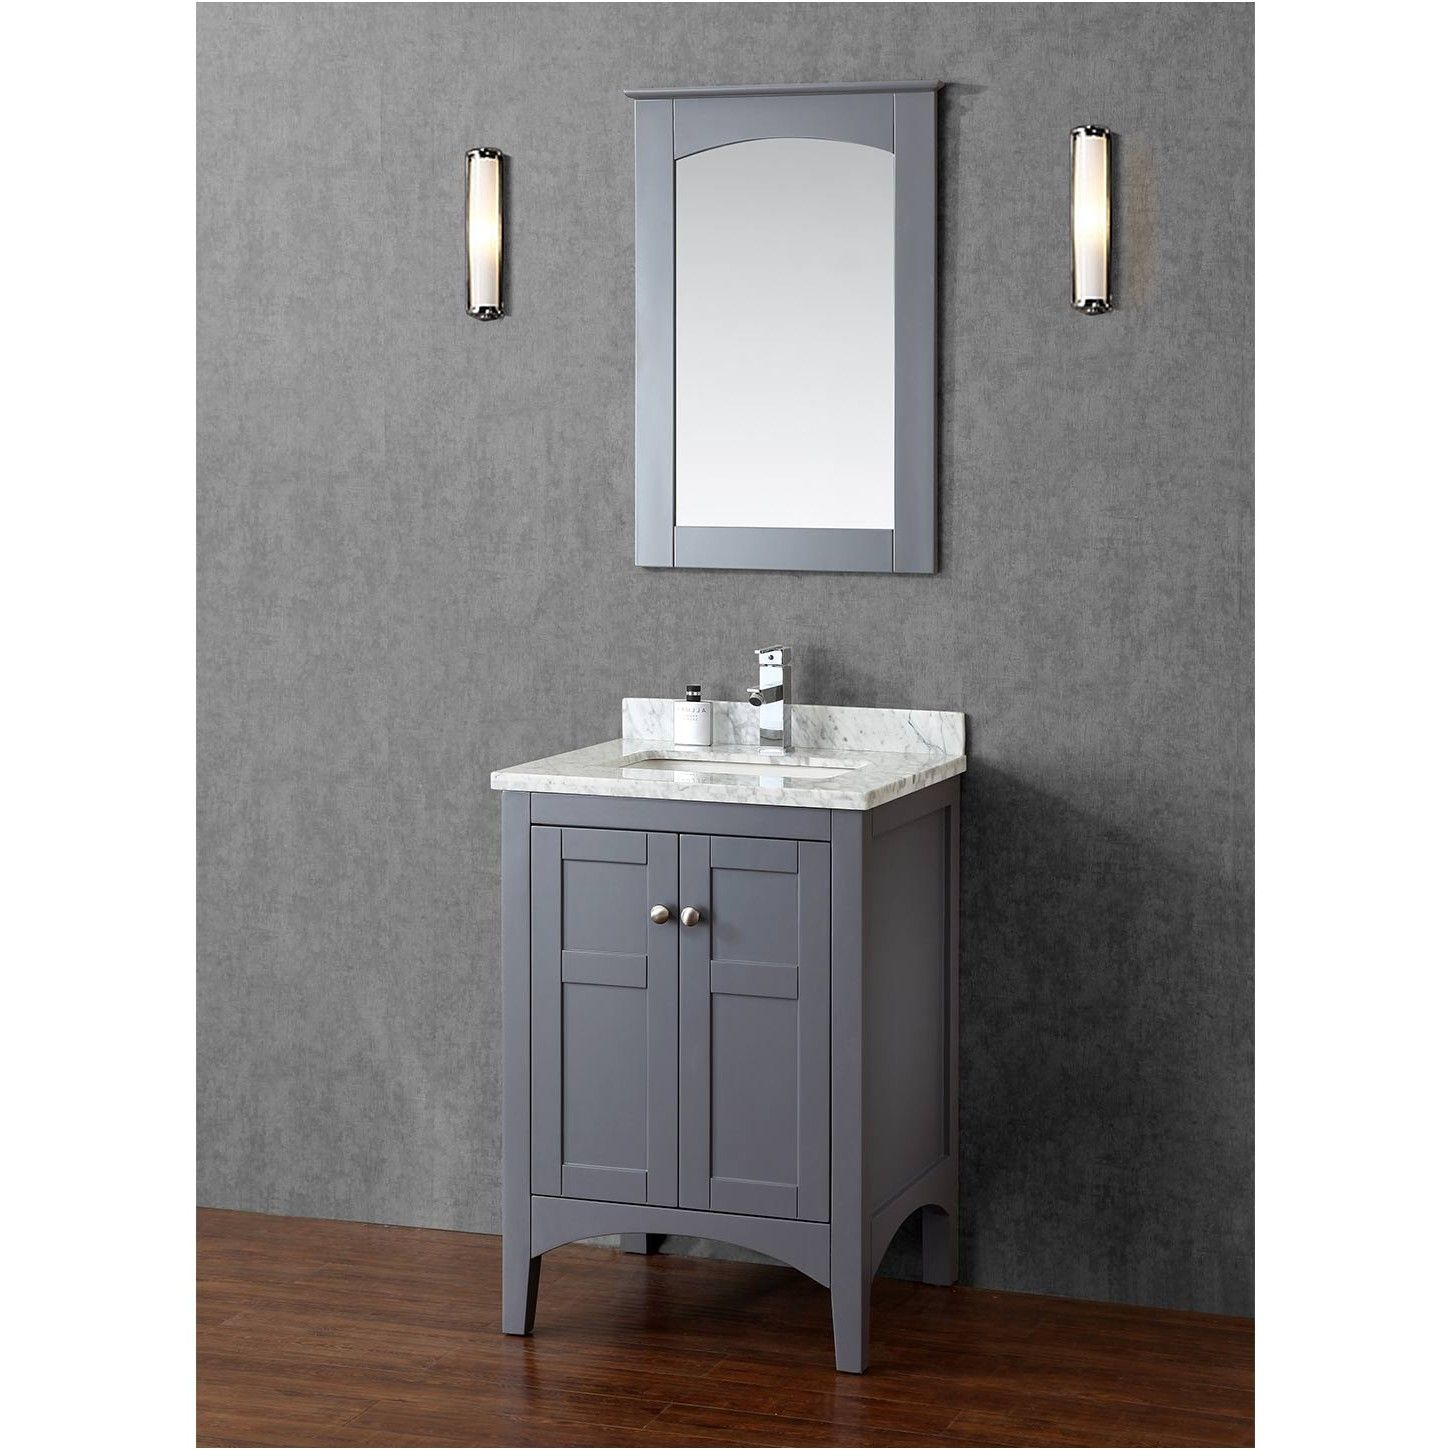 Bathroom Cabinets For Less Custom From